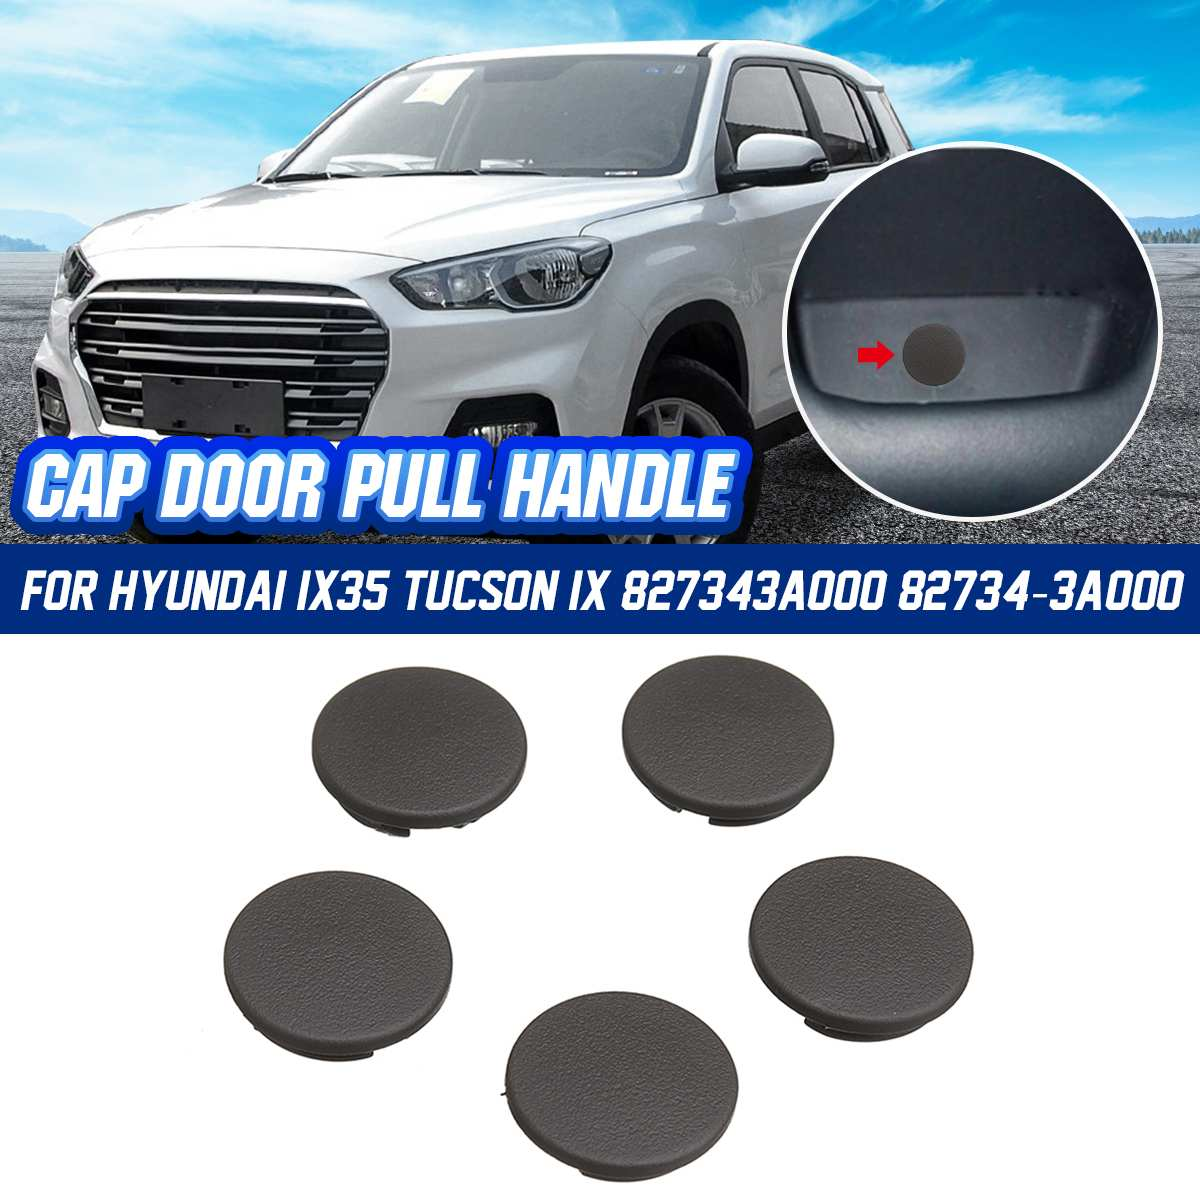 5Pcs Car Interior Door stopper Cap Pull Handle  827343A000 82734-3A000 For Hyundai IX35 Tucson IX